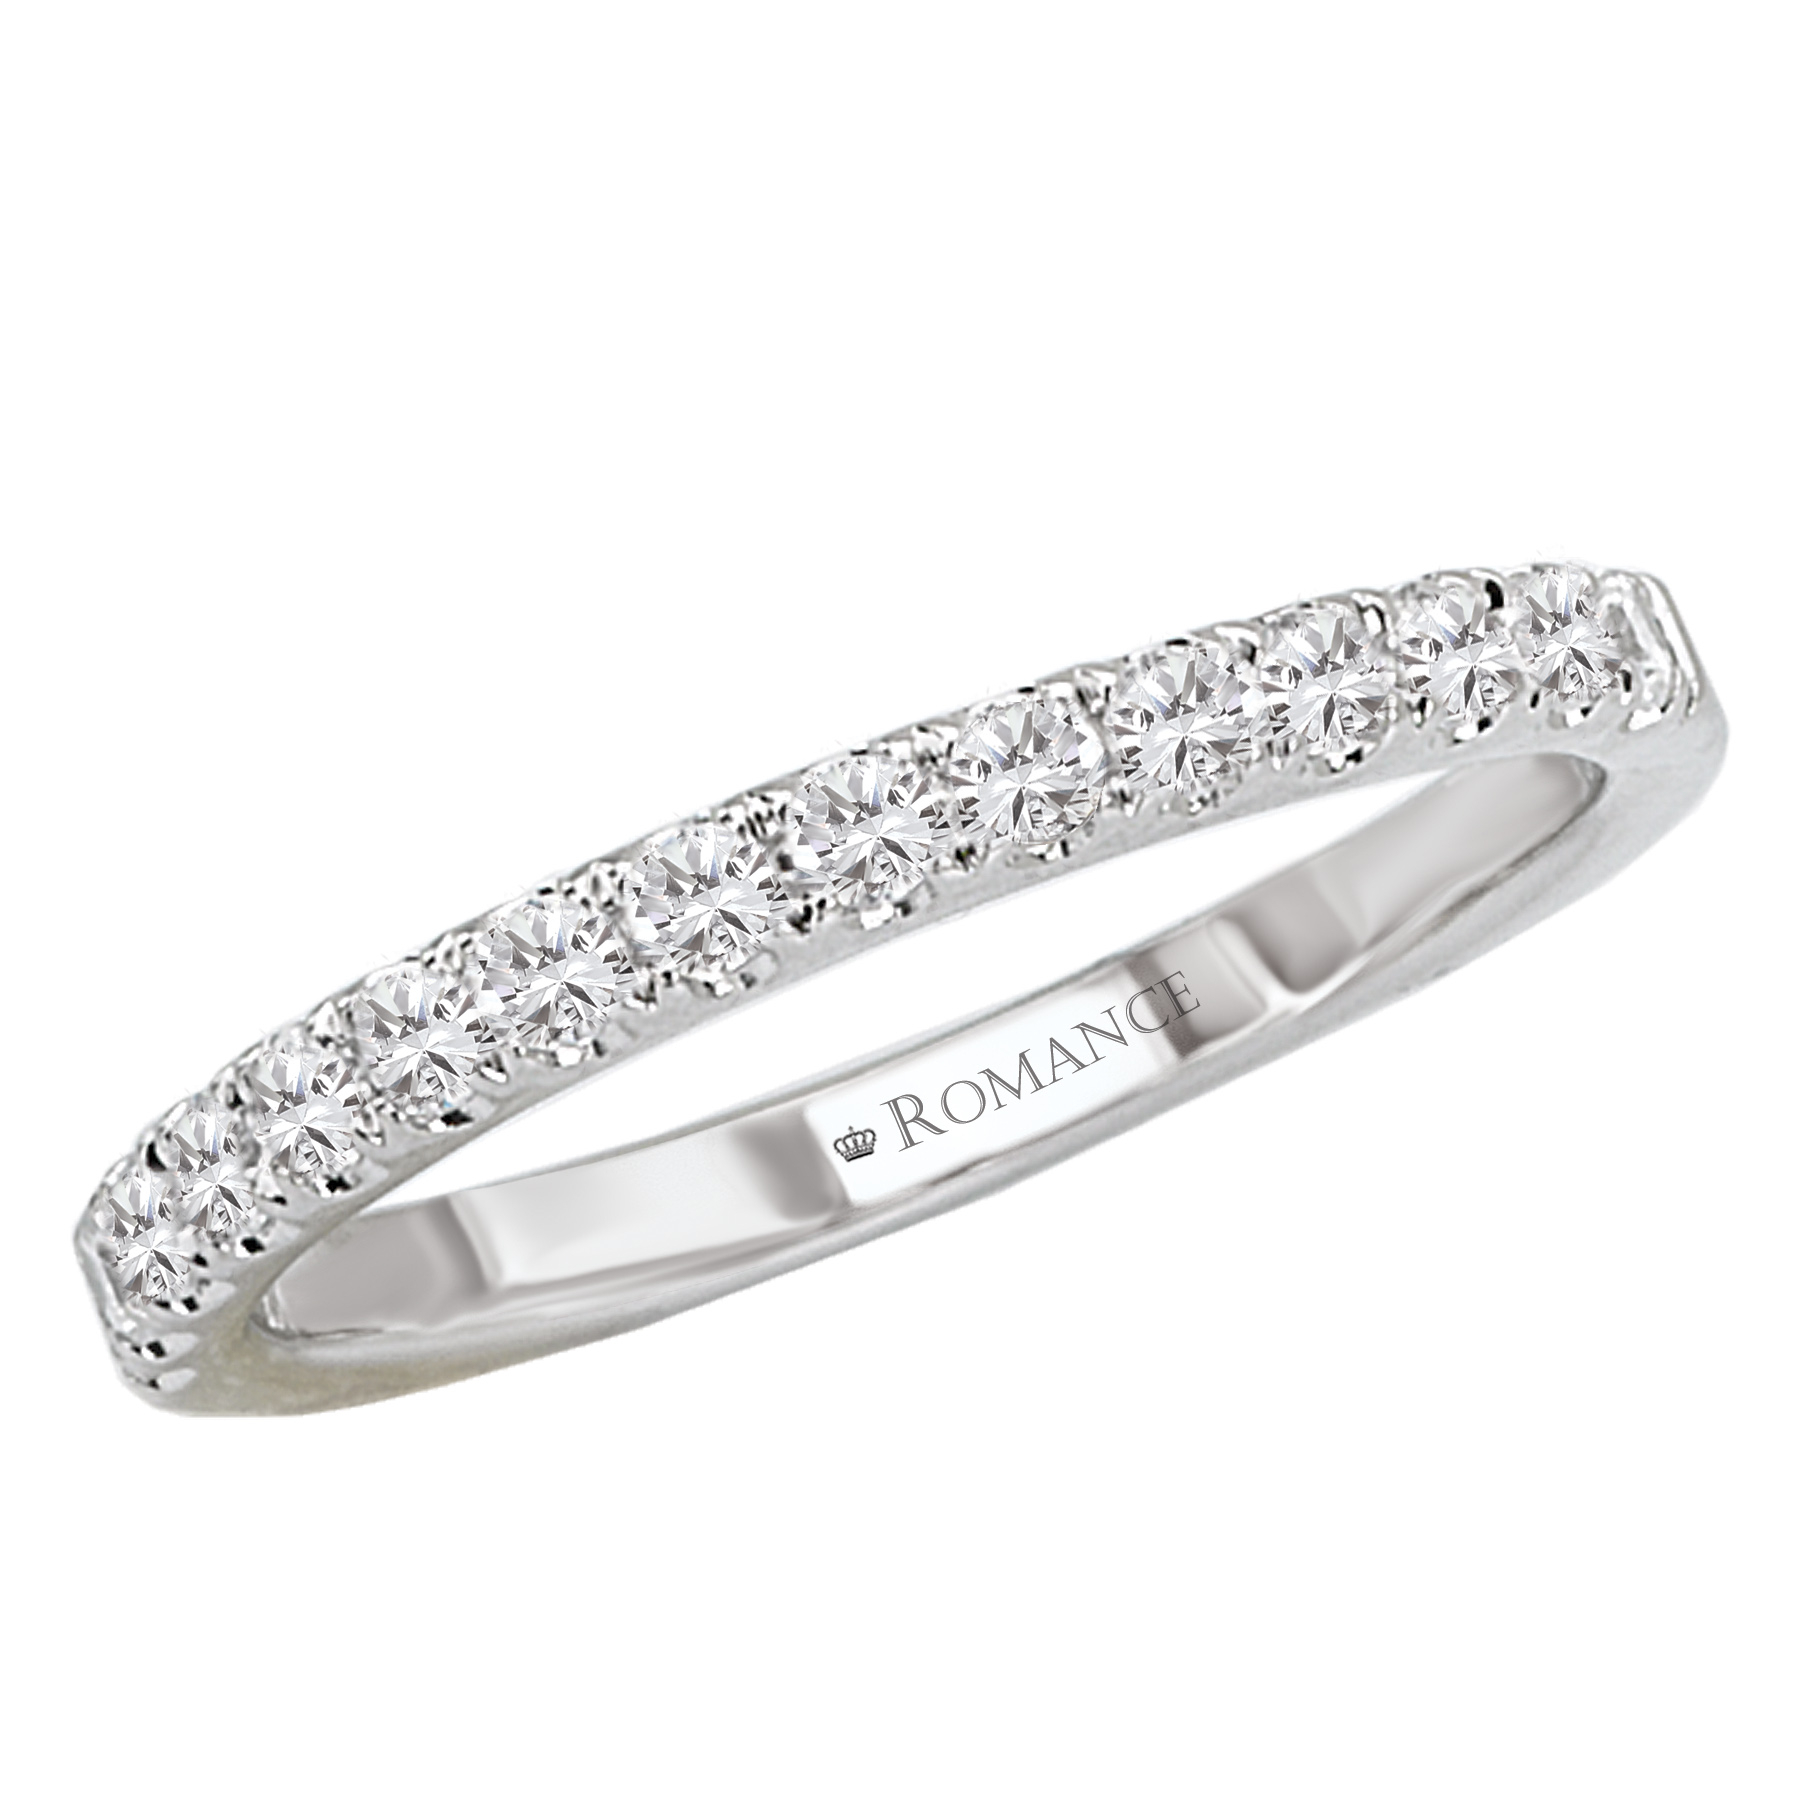 Romance Wedding Bands 117265-W product image